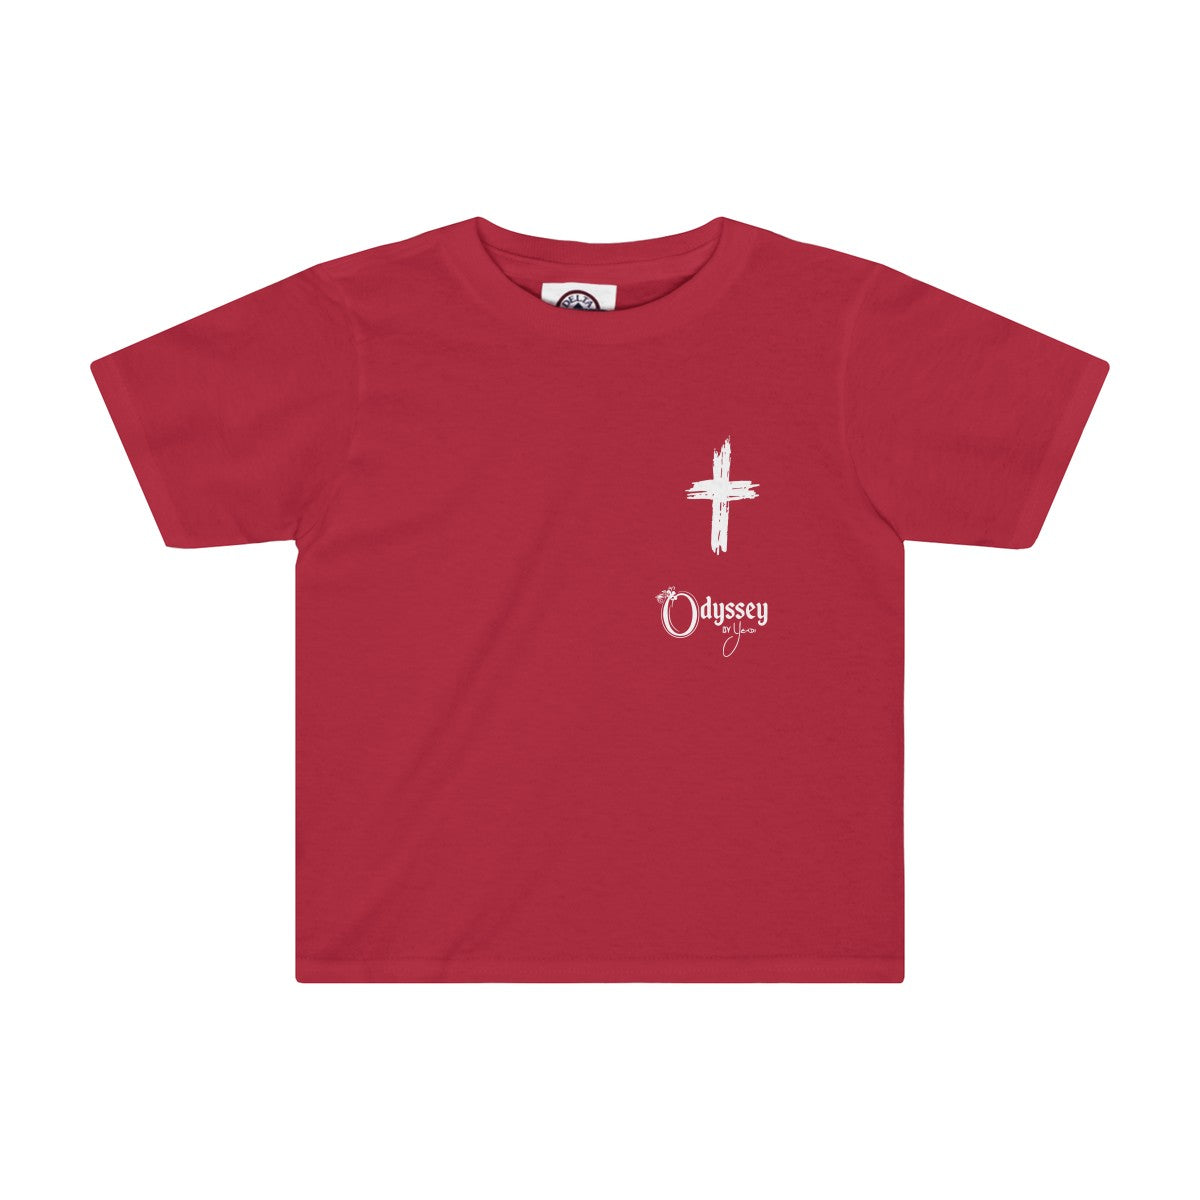 Odyssey Cross My Heart Kids Tee - Dark